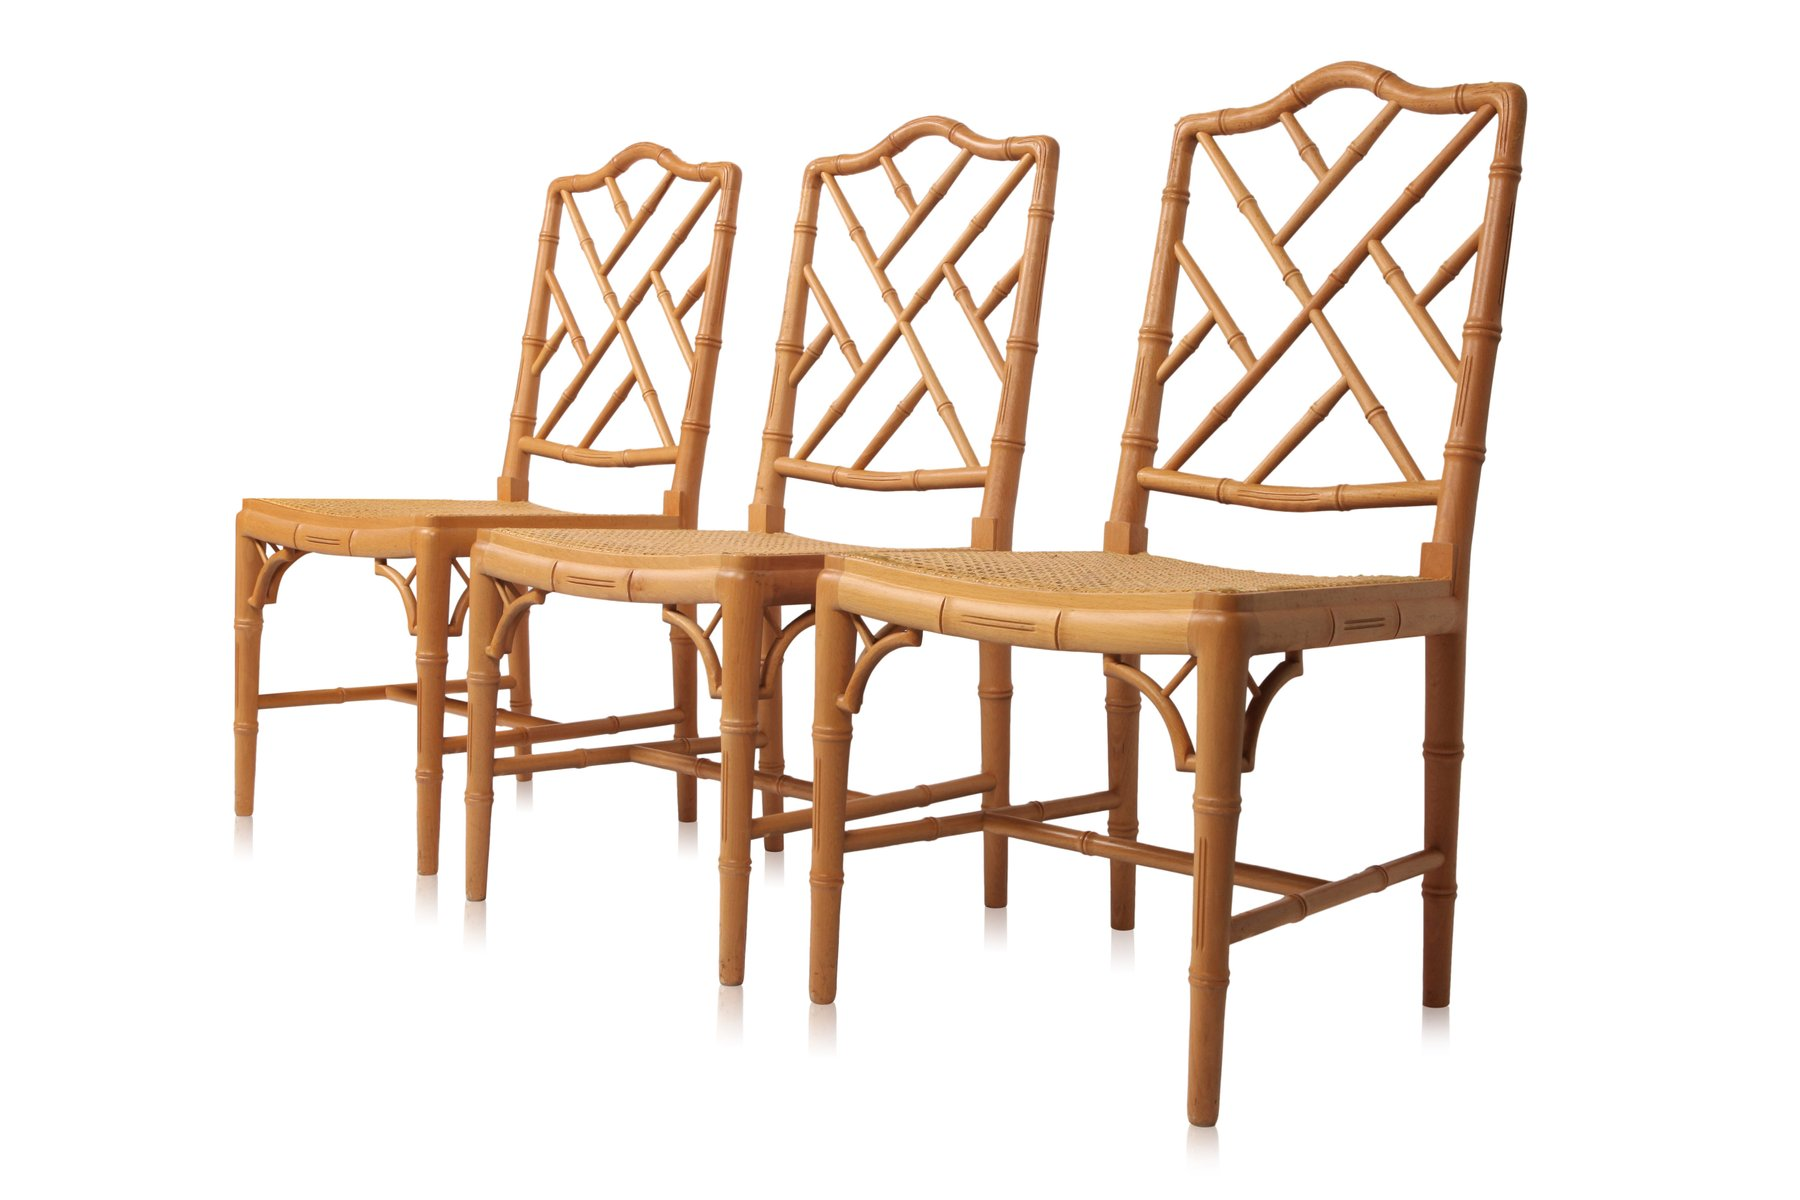 bamboo dining chair office accessories decor french chairs 1980s set of 6 for sale at